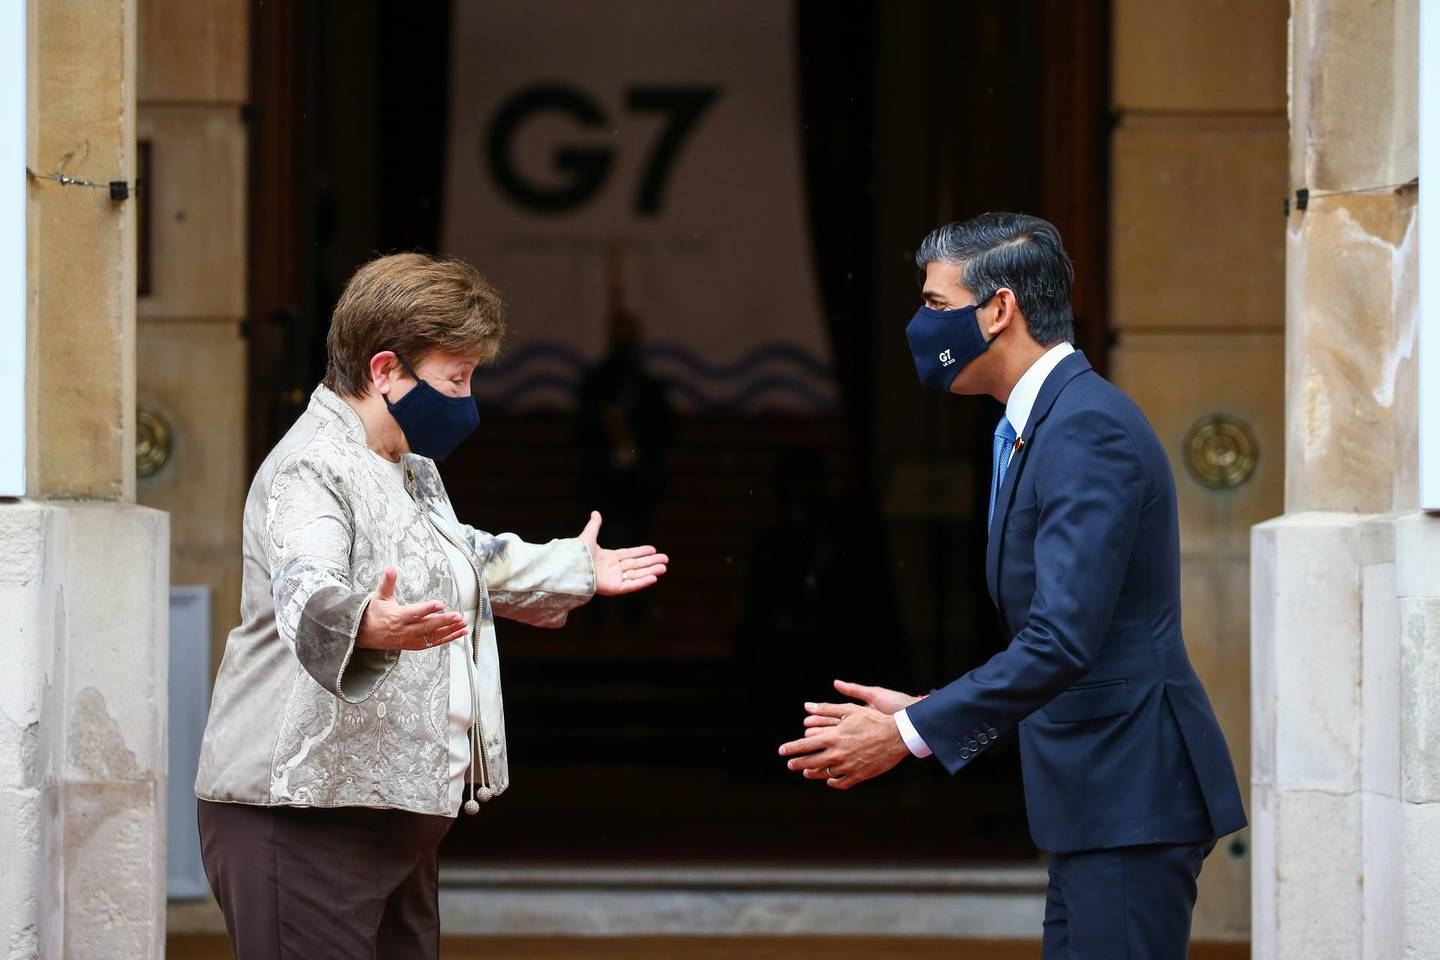 Rishi Sunak, U.K. Chancellor of the Exchequer, right, greets Kristalina Georgieva, managing director of the International Monetary Fund (IMF), on the first day of the Group of Seven Finance Ministers summit in London, U.K., on Friday, June 4, 2021. U.K. Chancellor Rishi Sunak will host G-7 finance ministers and central bank chiefs, ahead of the main summit next week. Photographer: Hollie Adams/Bloomberg